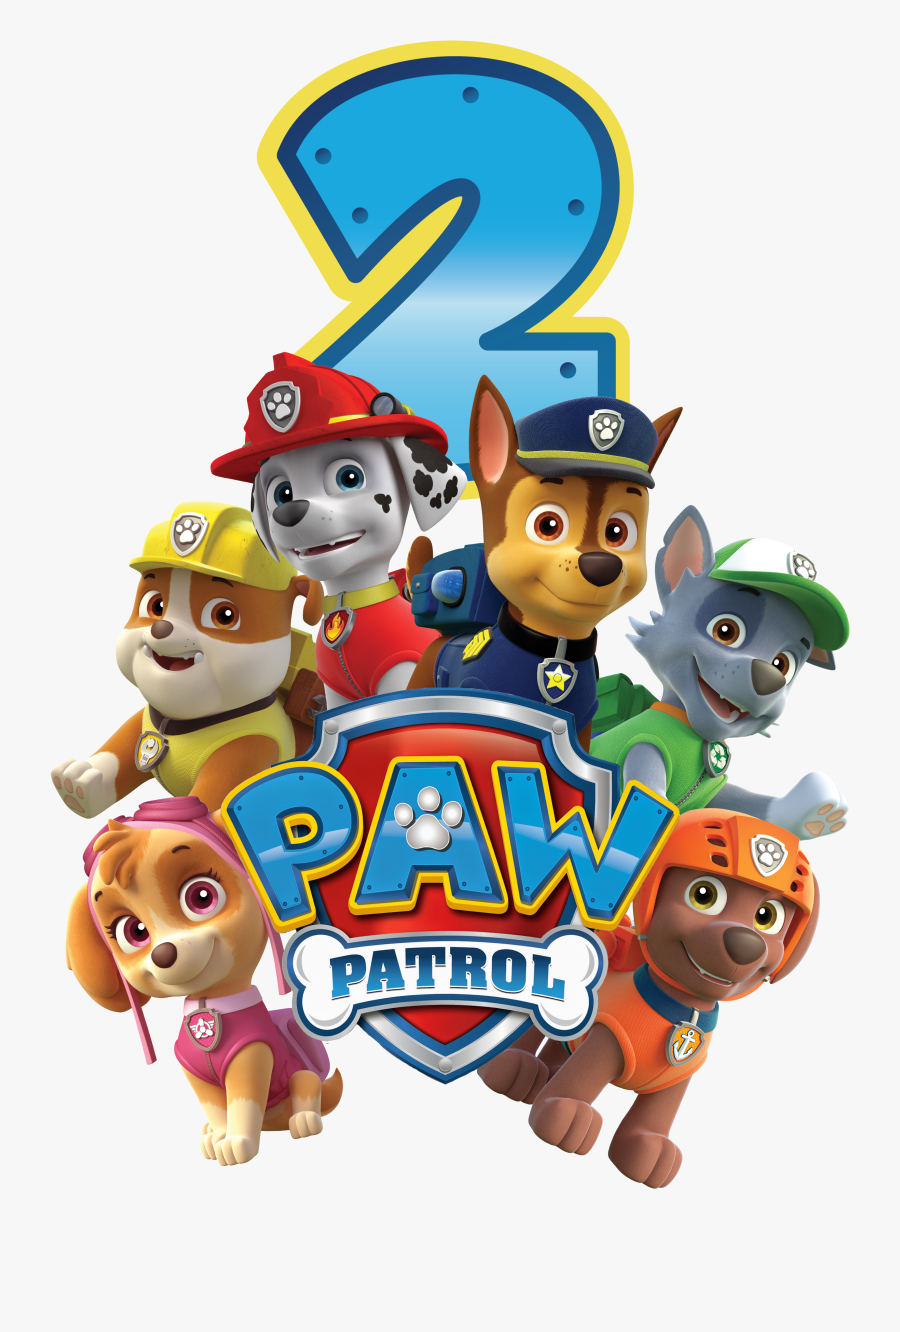 Paw Patrol All Character Png Kids - Paw Patrol Birthday Png, Transparent Clipart